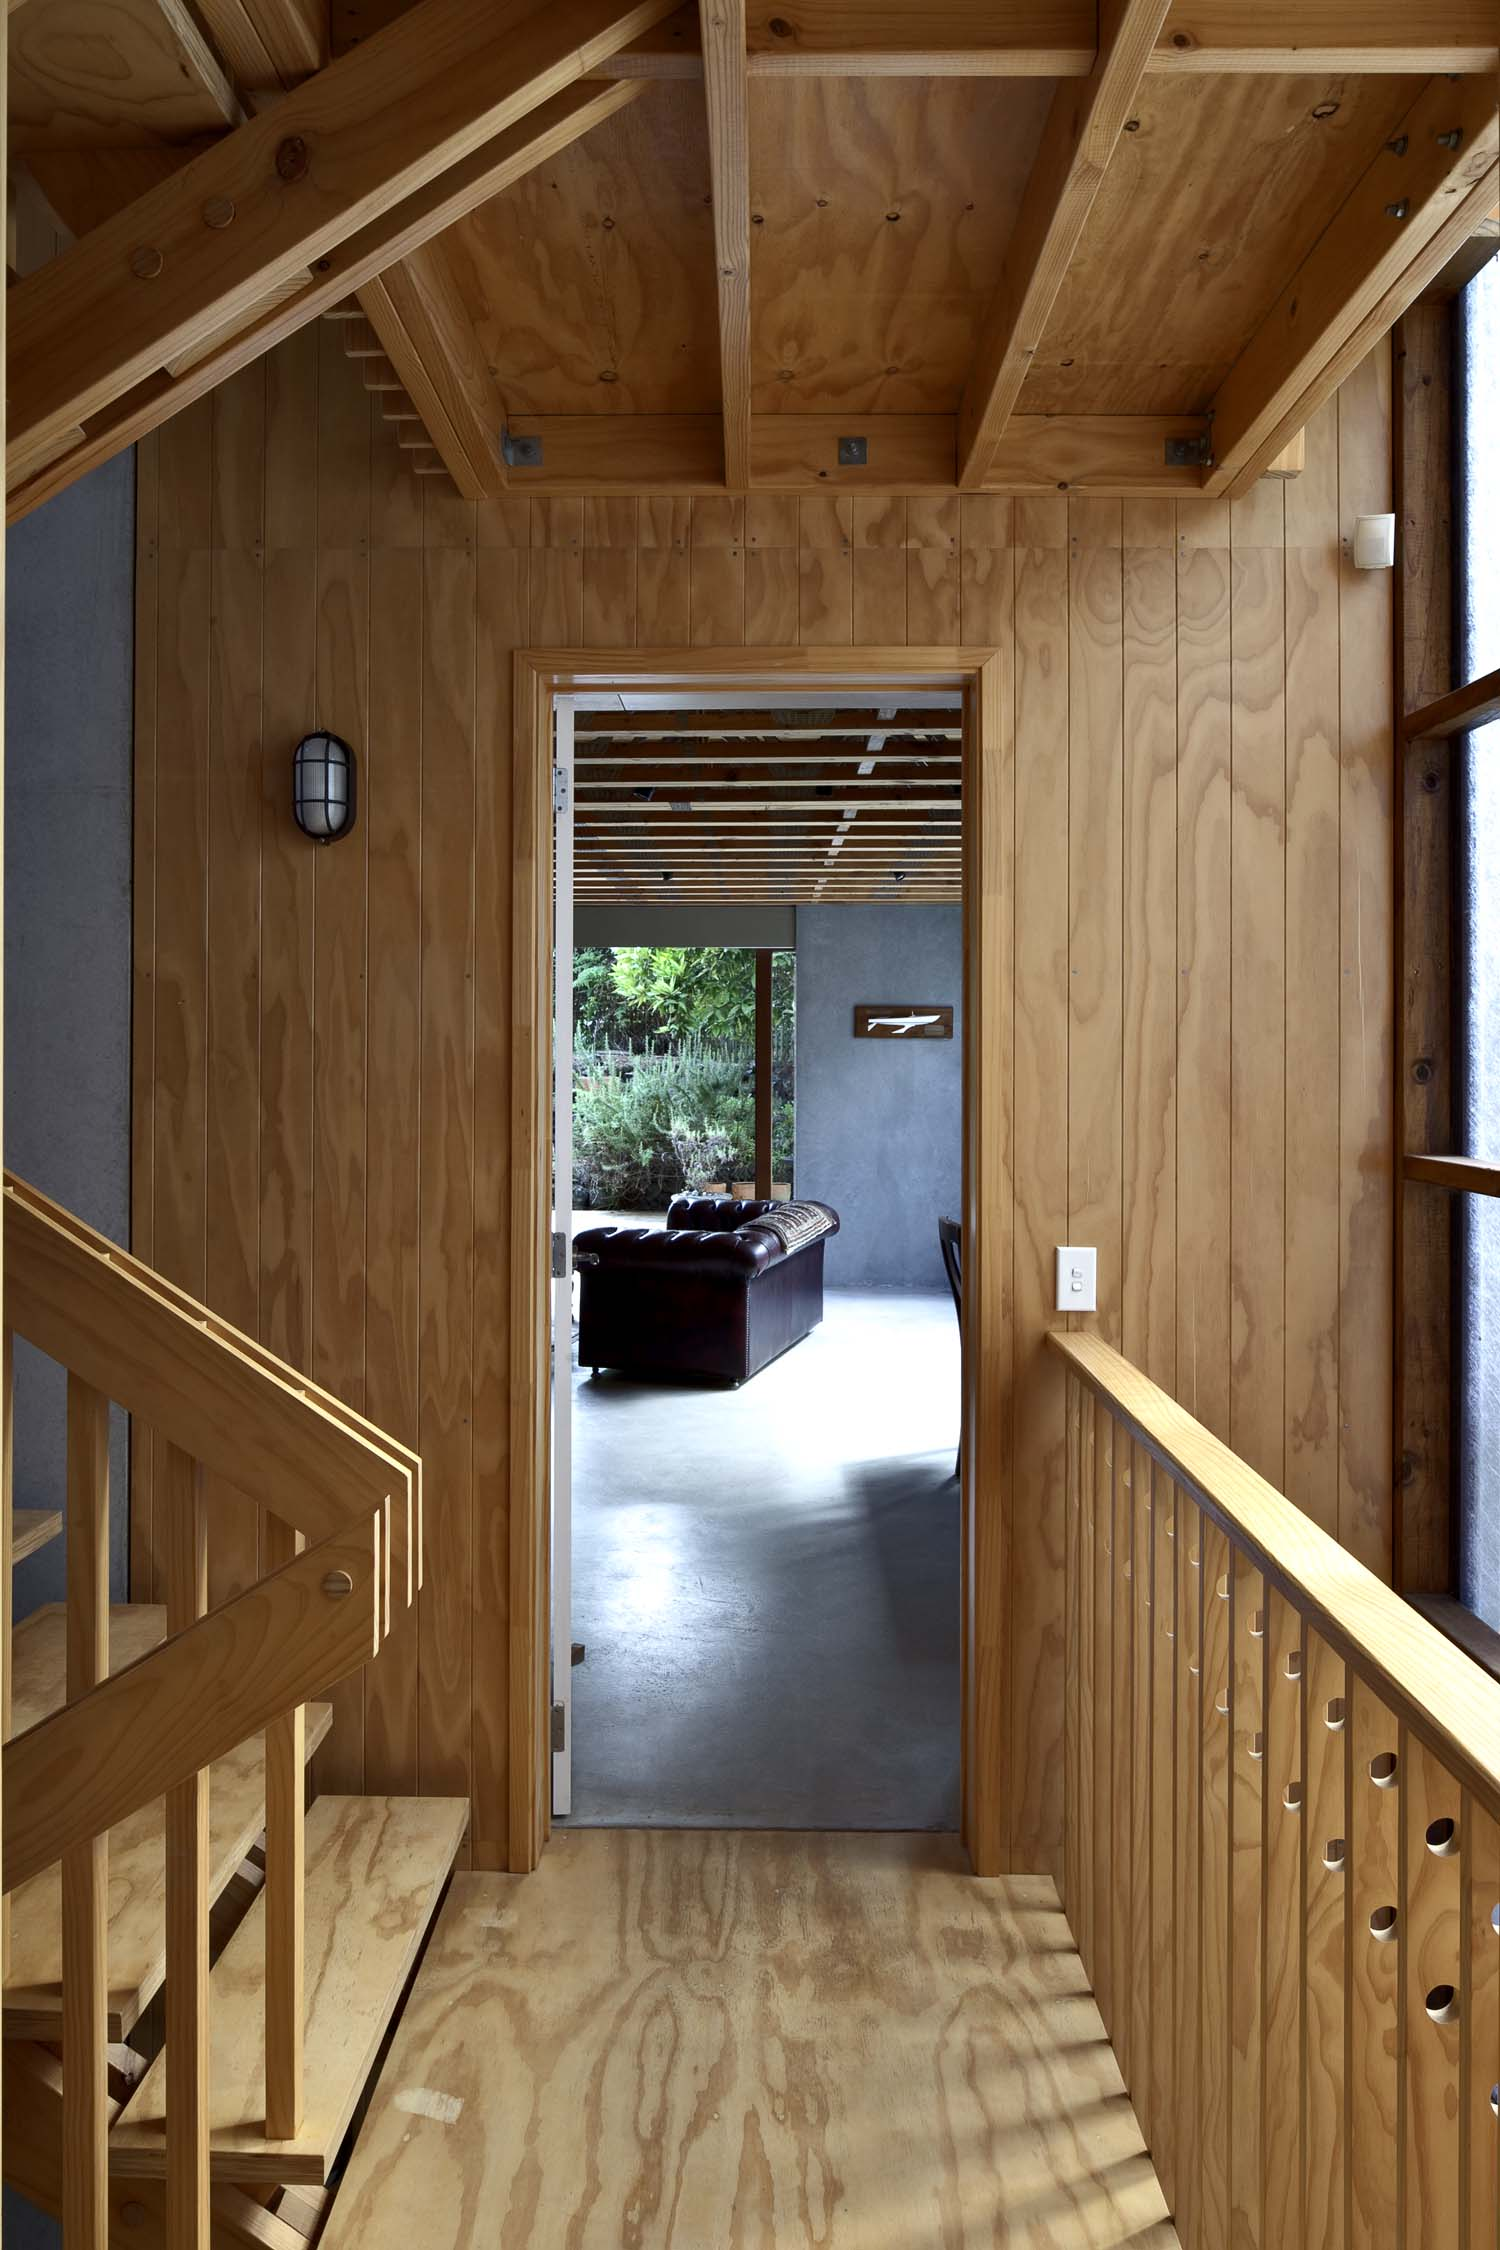 Megan Rule suburban house hoop-pine plywood and timber in stairwell